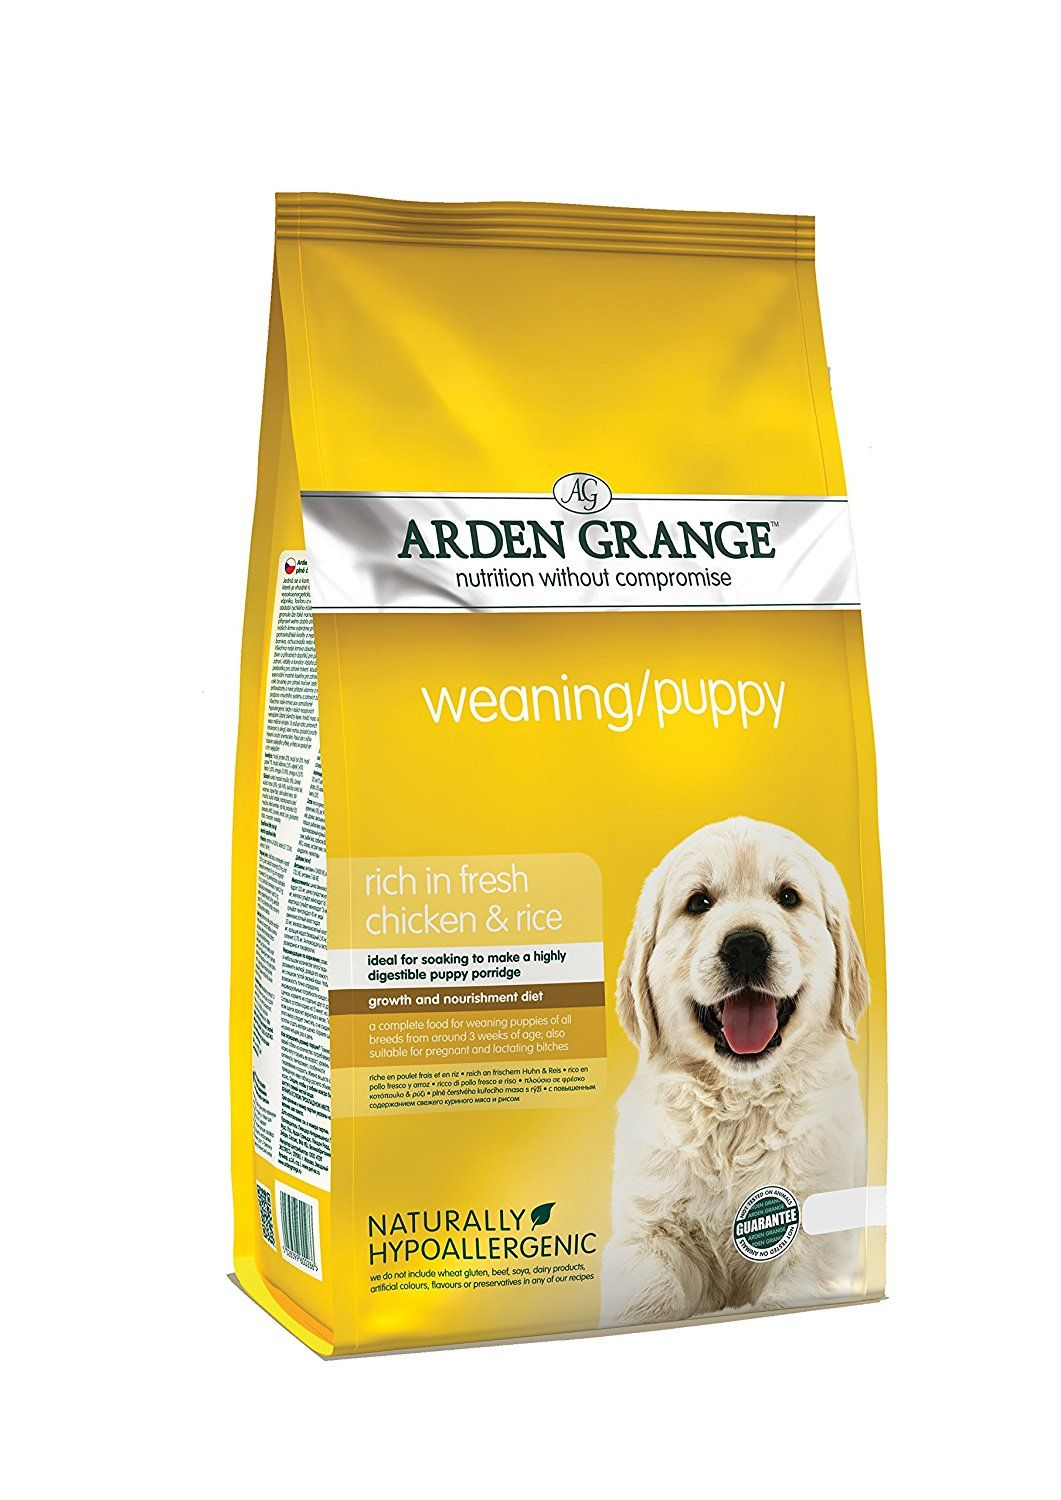 Arden Grange Weaning Puppy Dog Food 2 Kg Check Out The Image